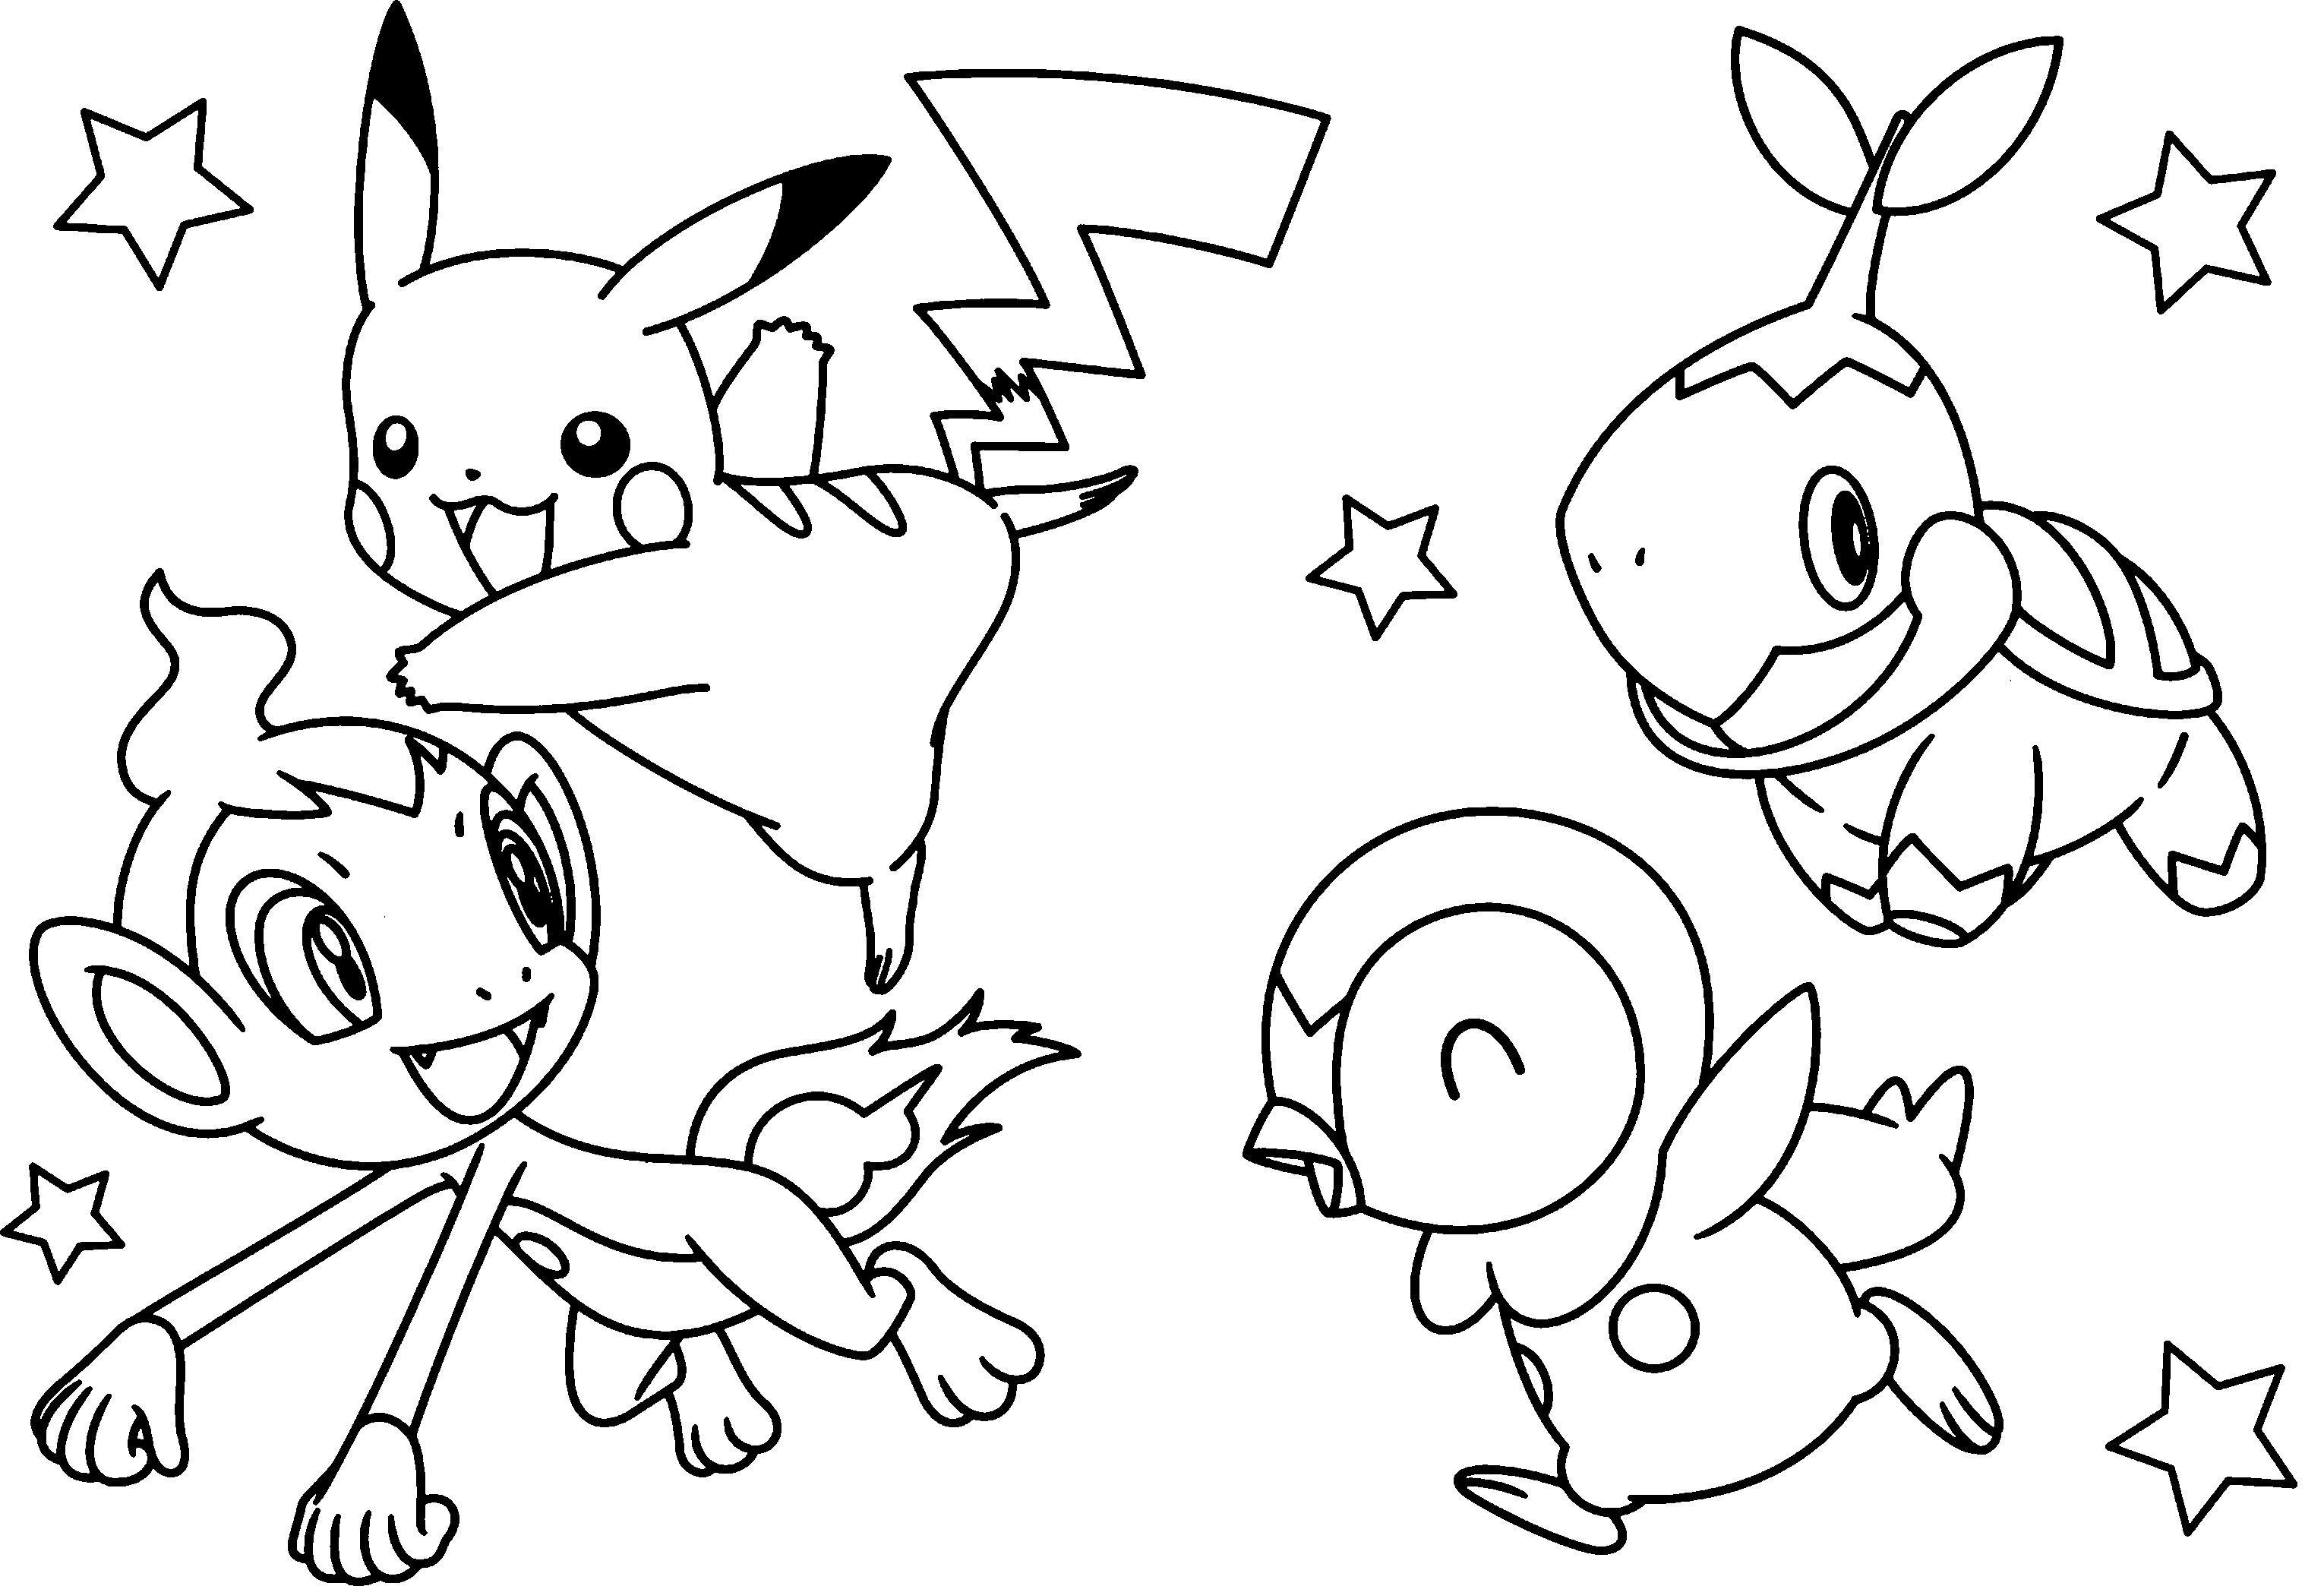 Pokemon Go Coloring Pages - Best Coloring Pages For Kids